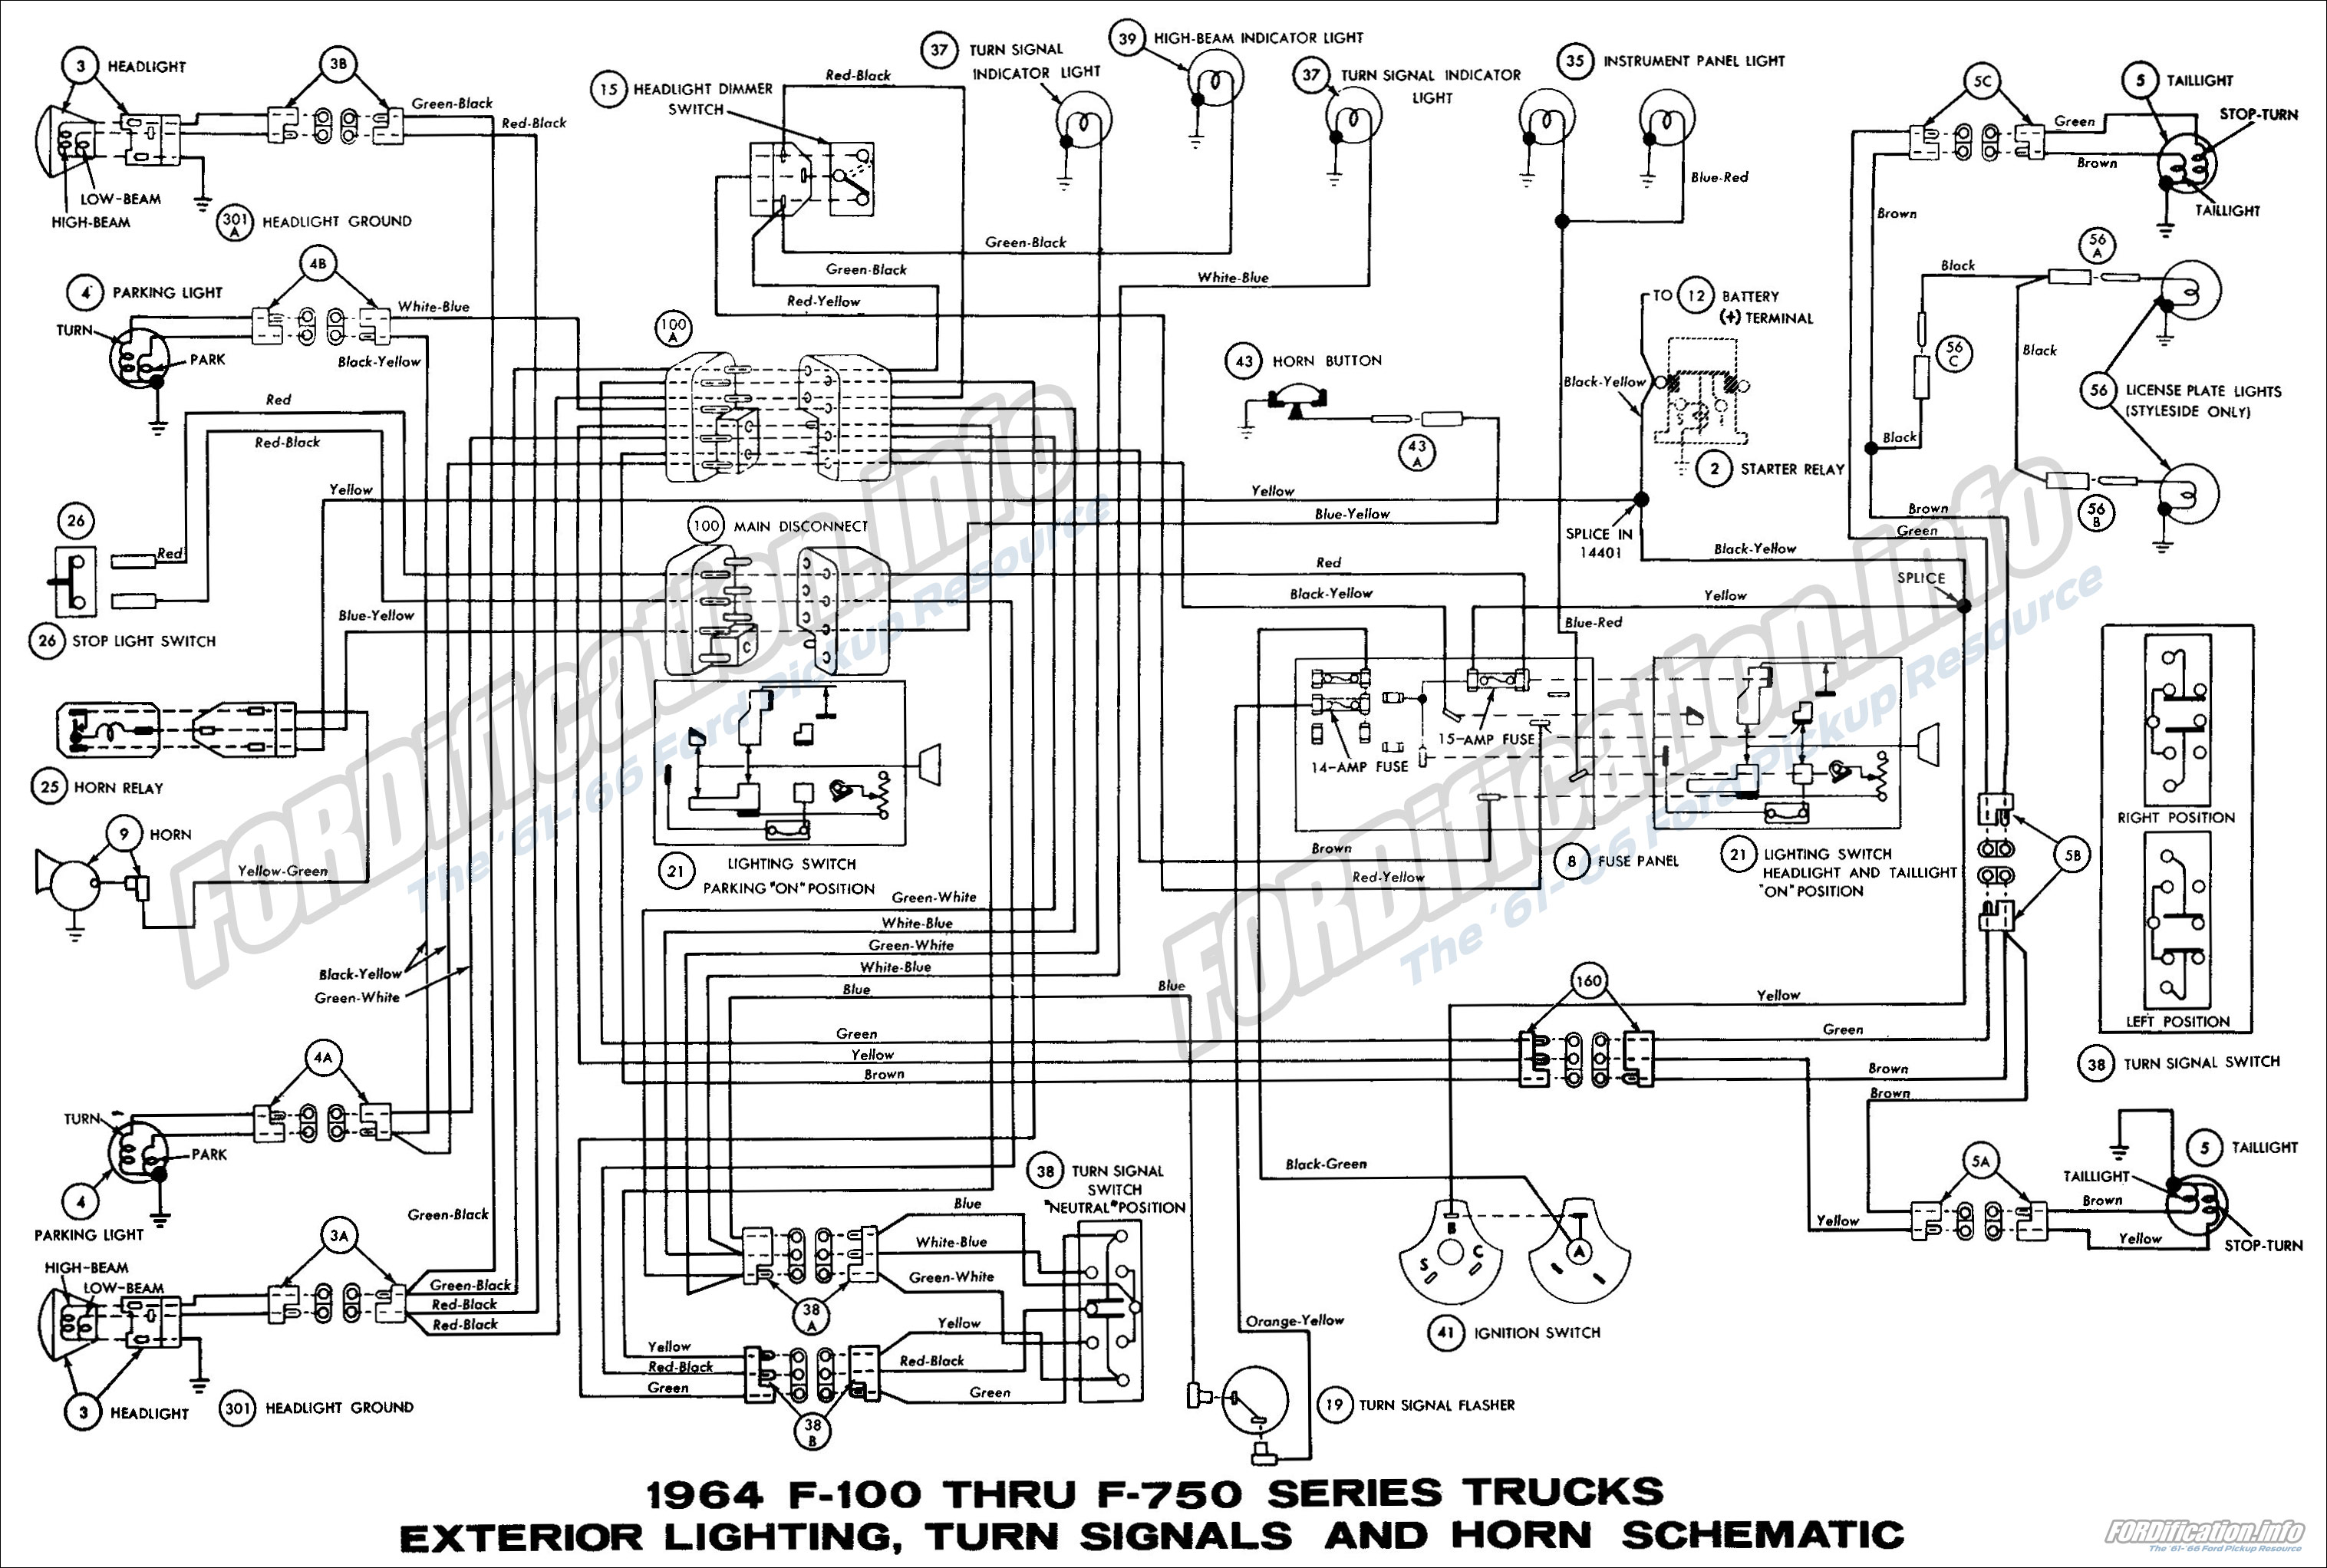 Ford Truck Wiring Diagram - Wiring Diagram